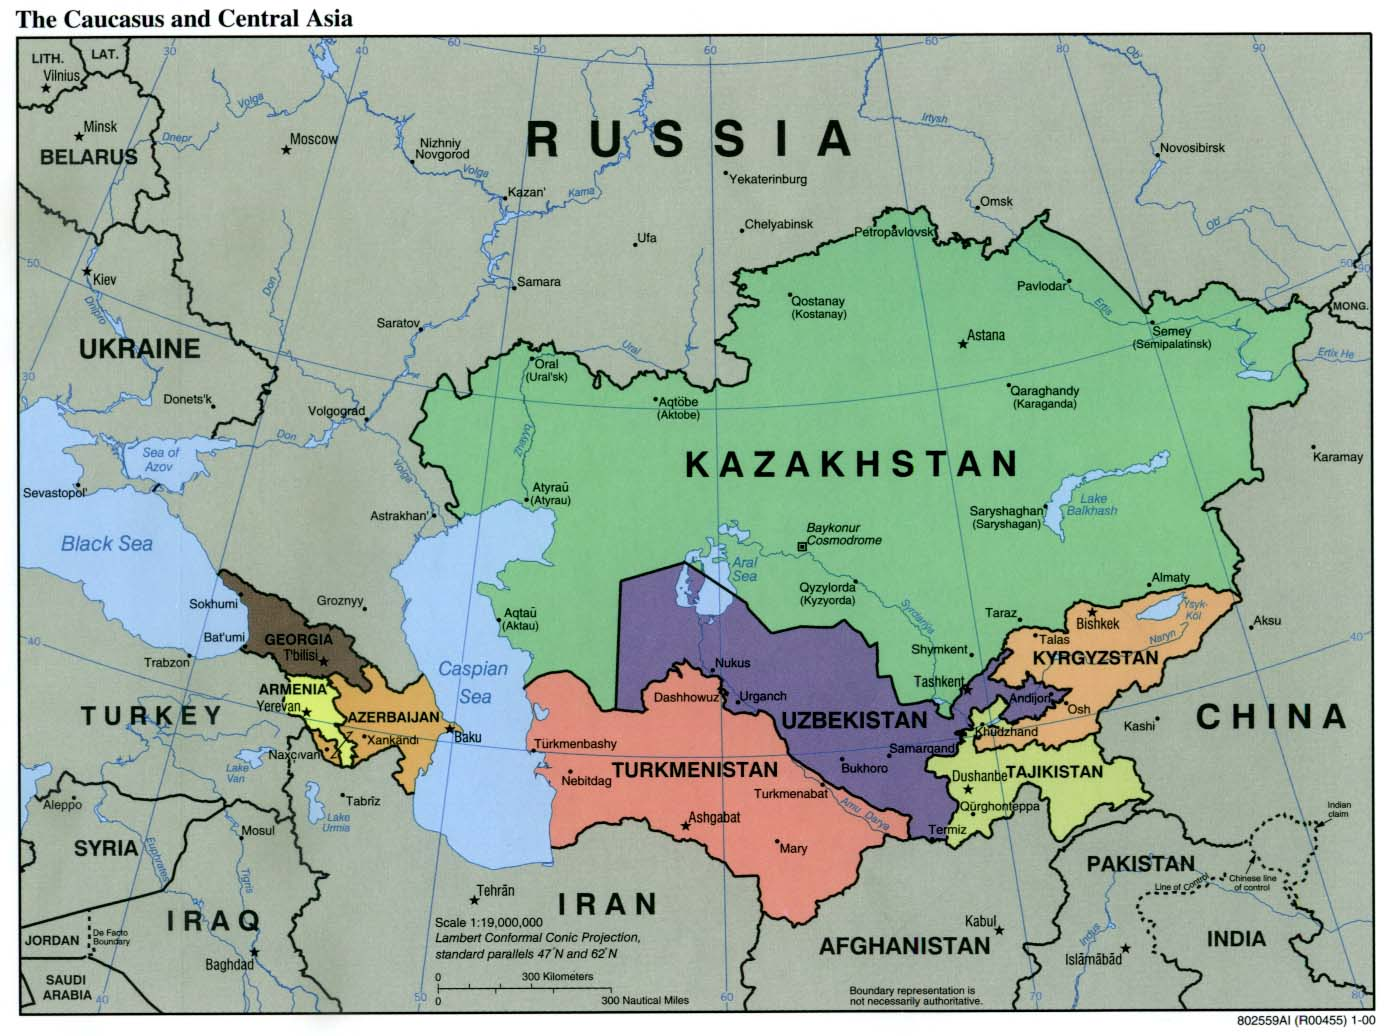 The Caucasus and Central Asia Political Map 2000